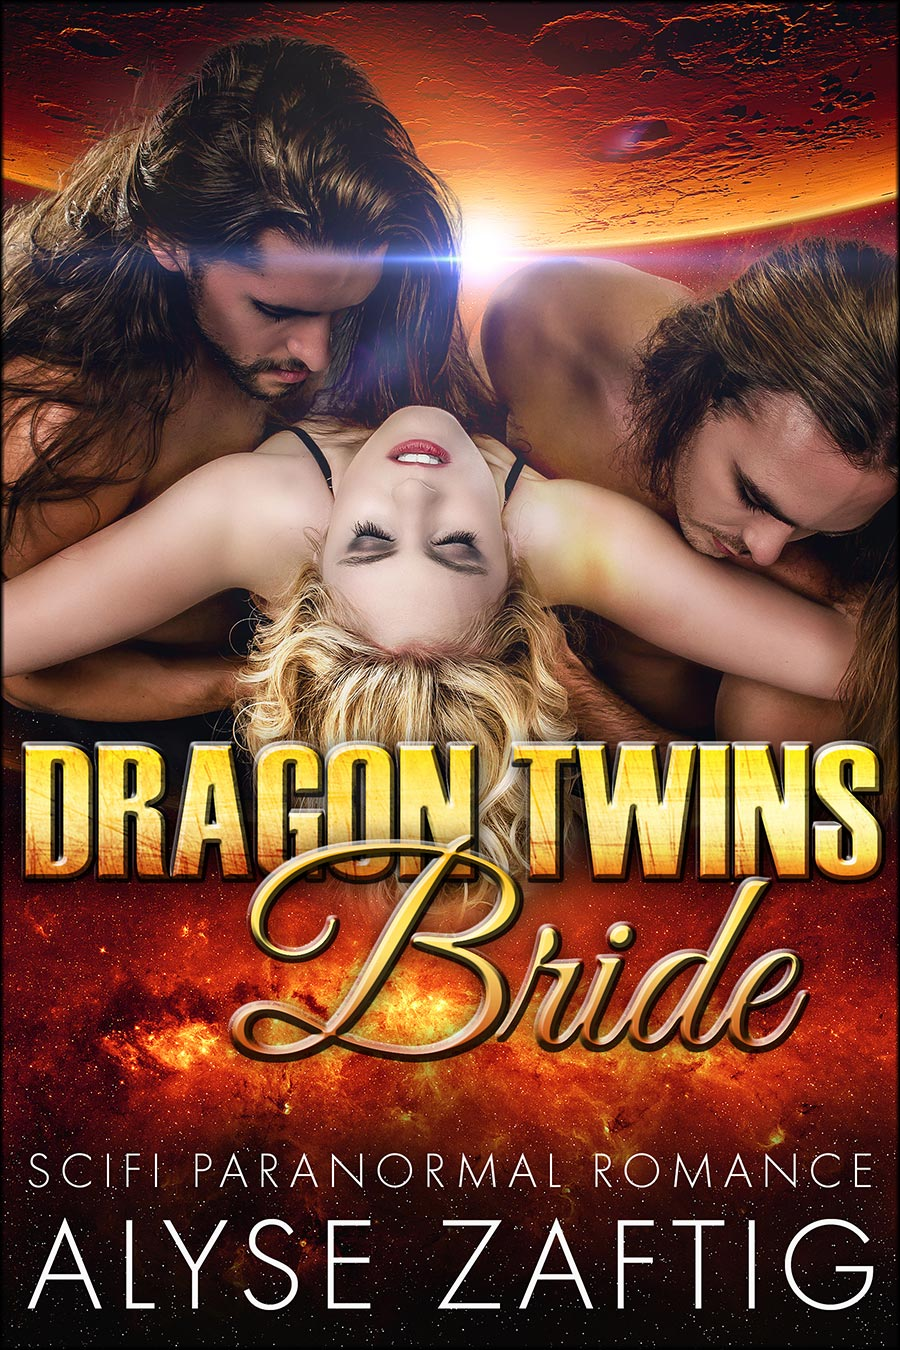 Dragon-Twins-Bride---alyse-zaftig.jpg